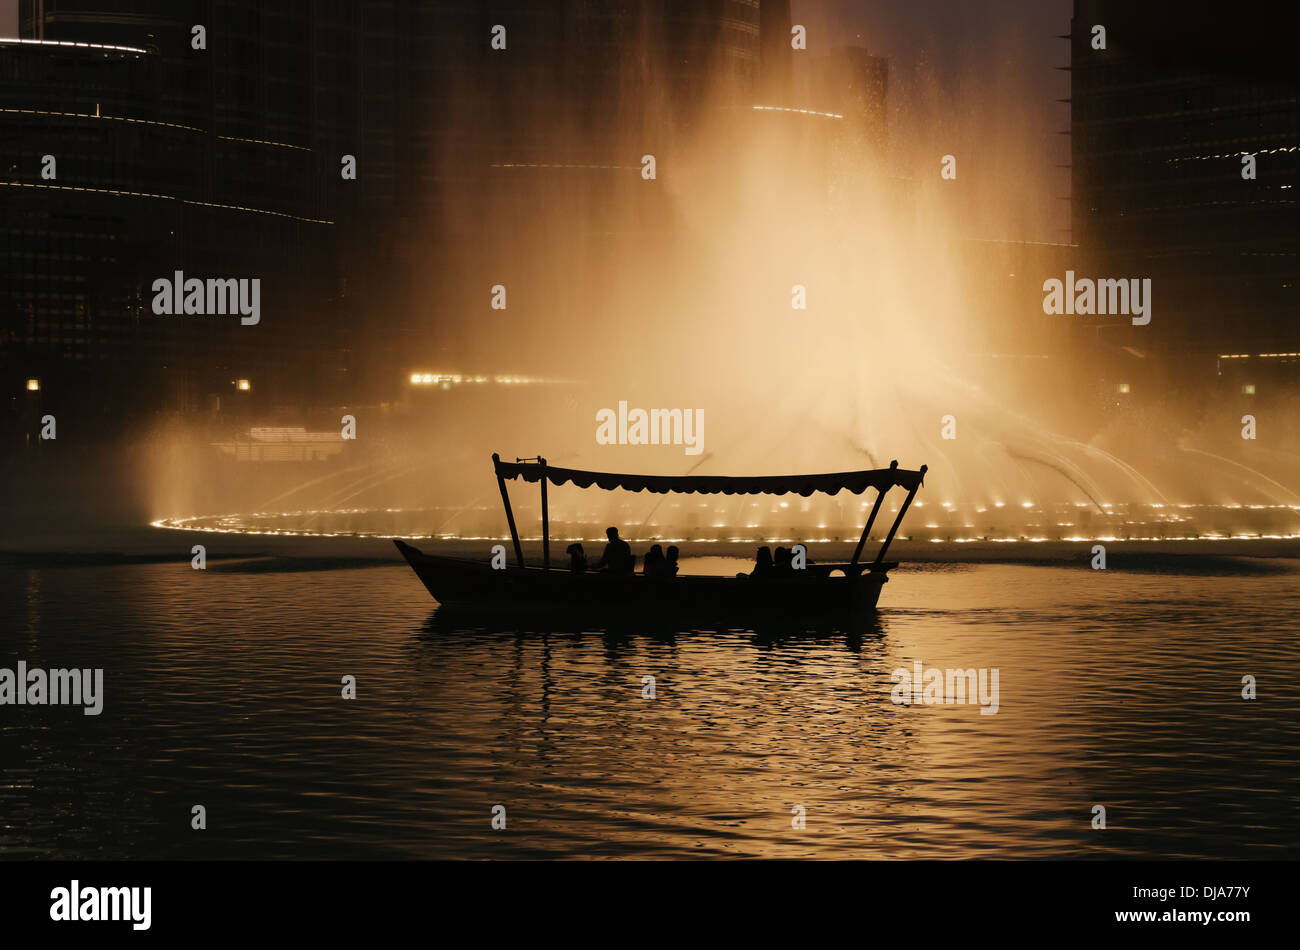 Spectators riding a traditional abra to enjoy the musical show at The Dubai Fountain. Dubai, United Arab Emirates. - Stock Image